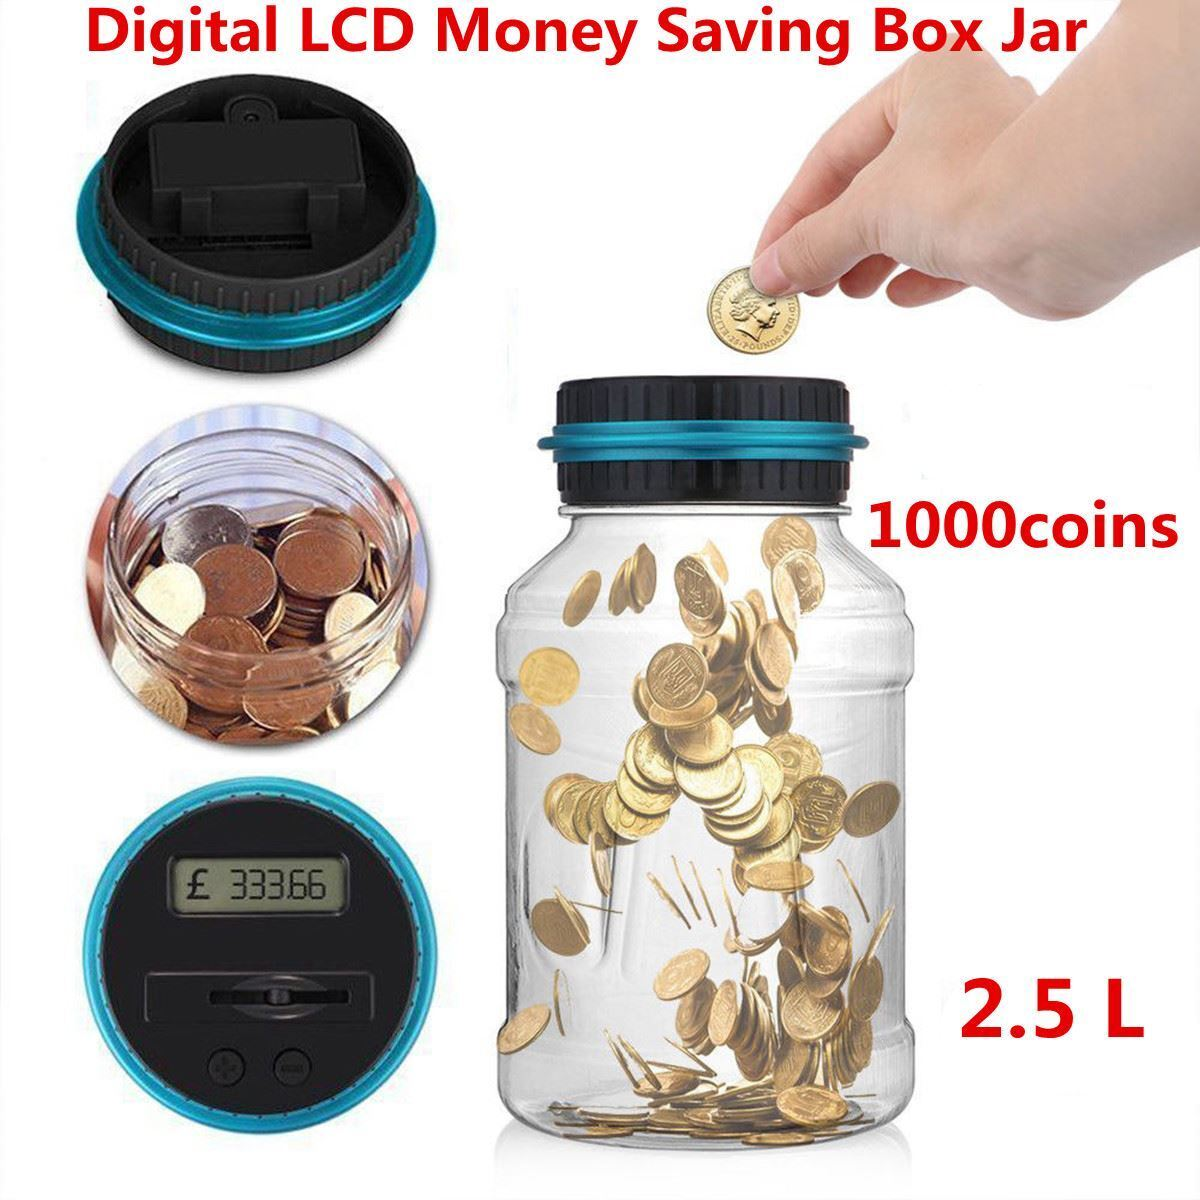 Coin Auto Counting Money Jar Cup Digital Lcd Automatic